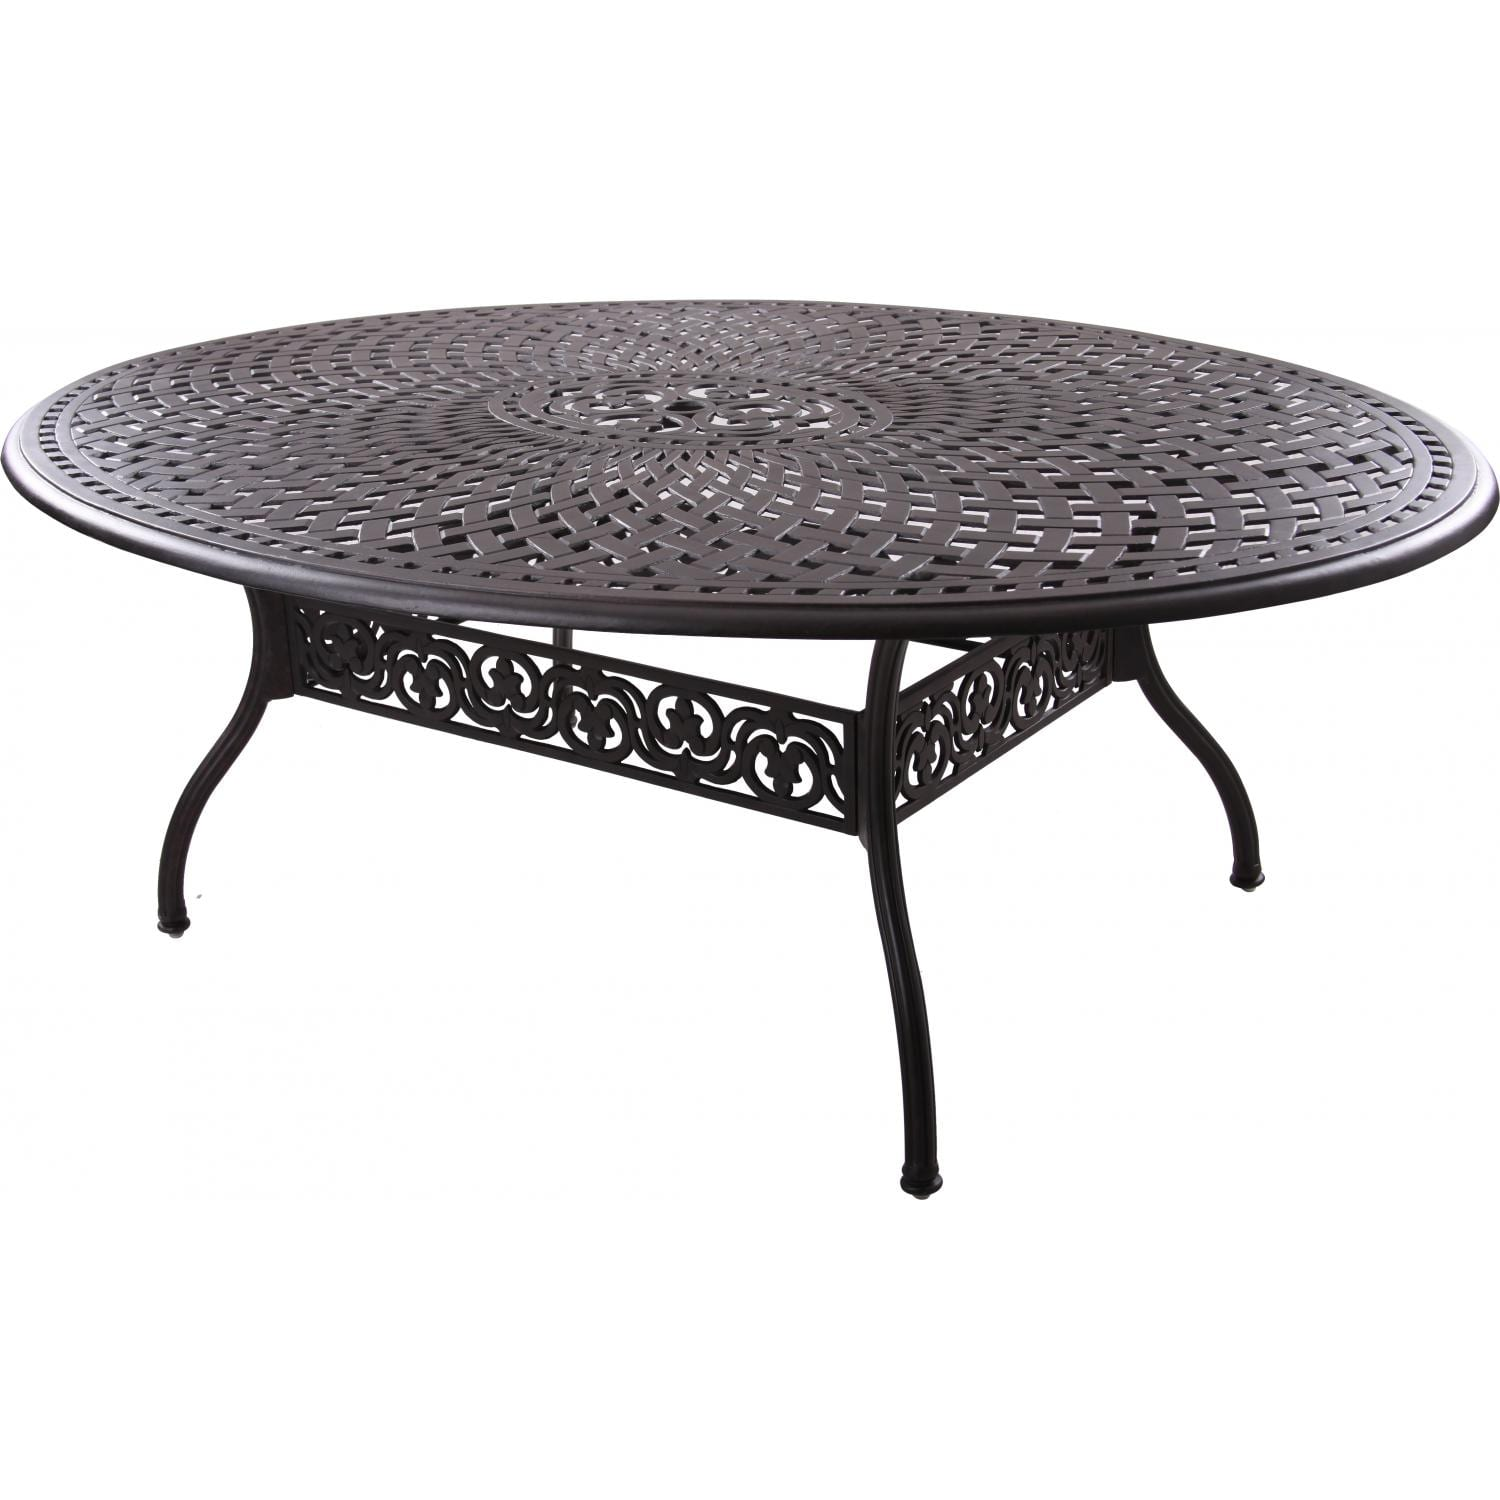 Darlee Series 60 Aluminum Patio Dining Table